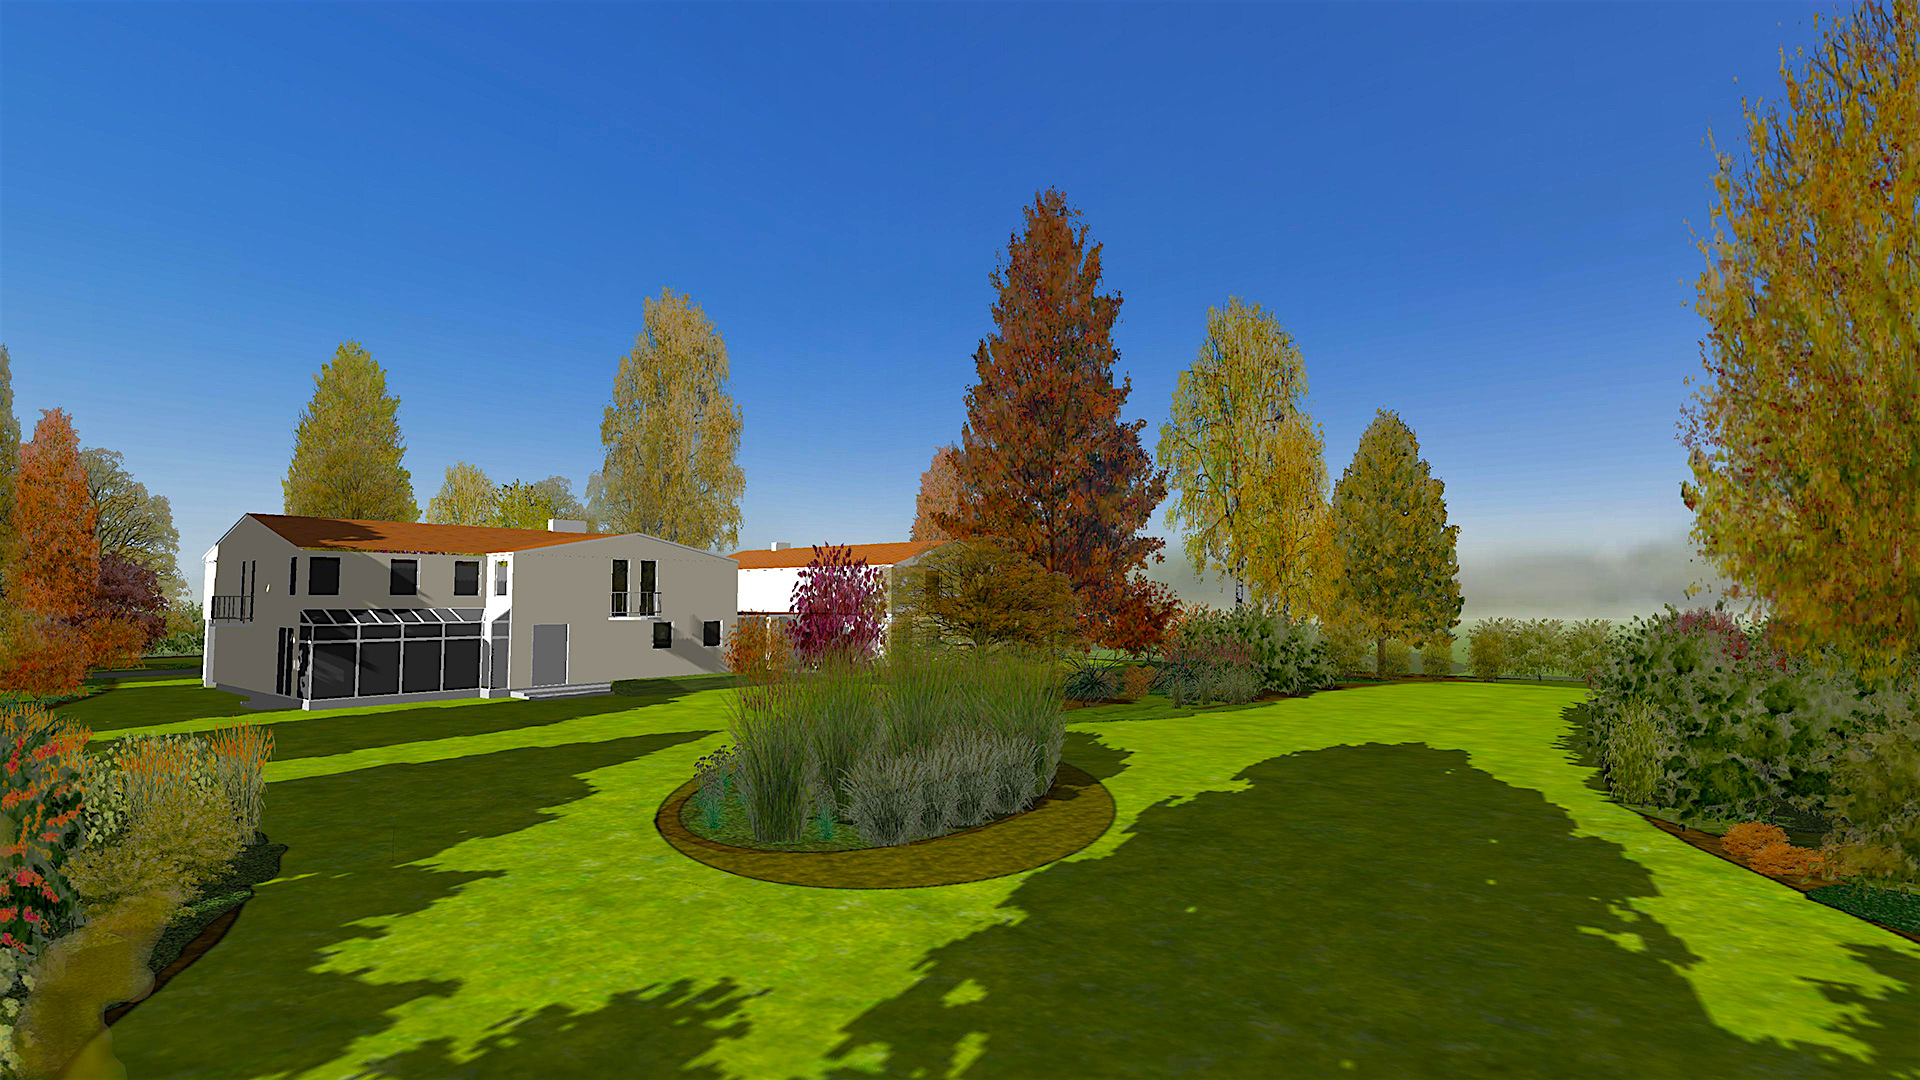 Gardenphilia DESIGNER software for professional garden 3D design and visualization